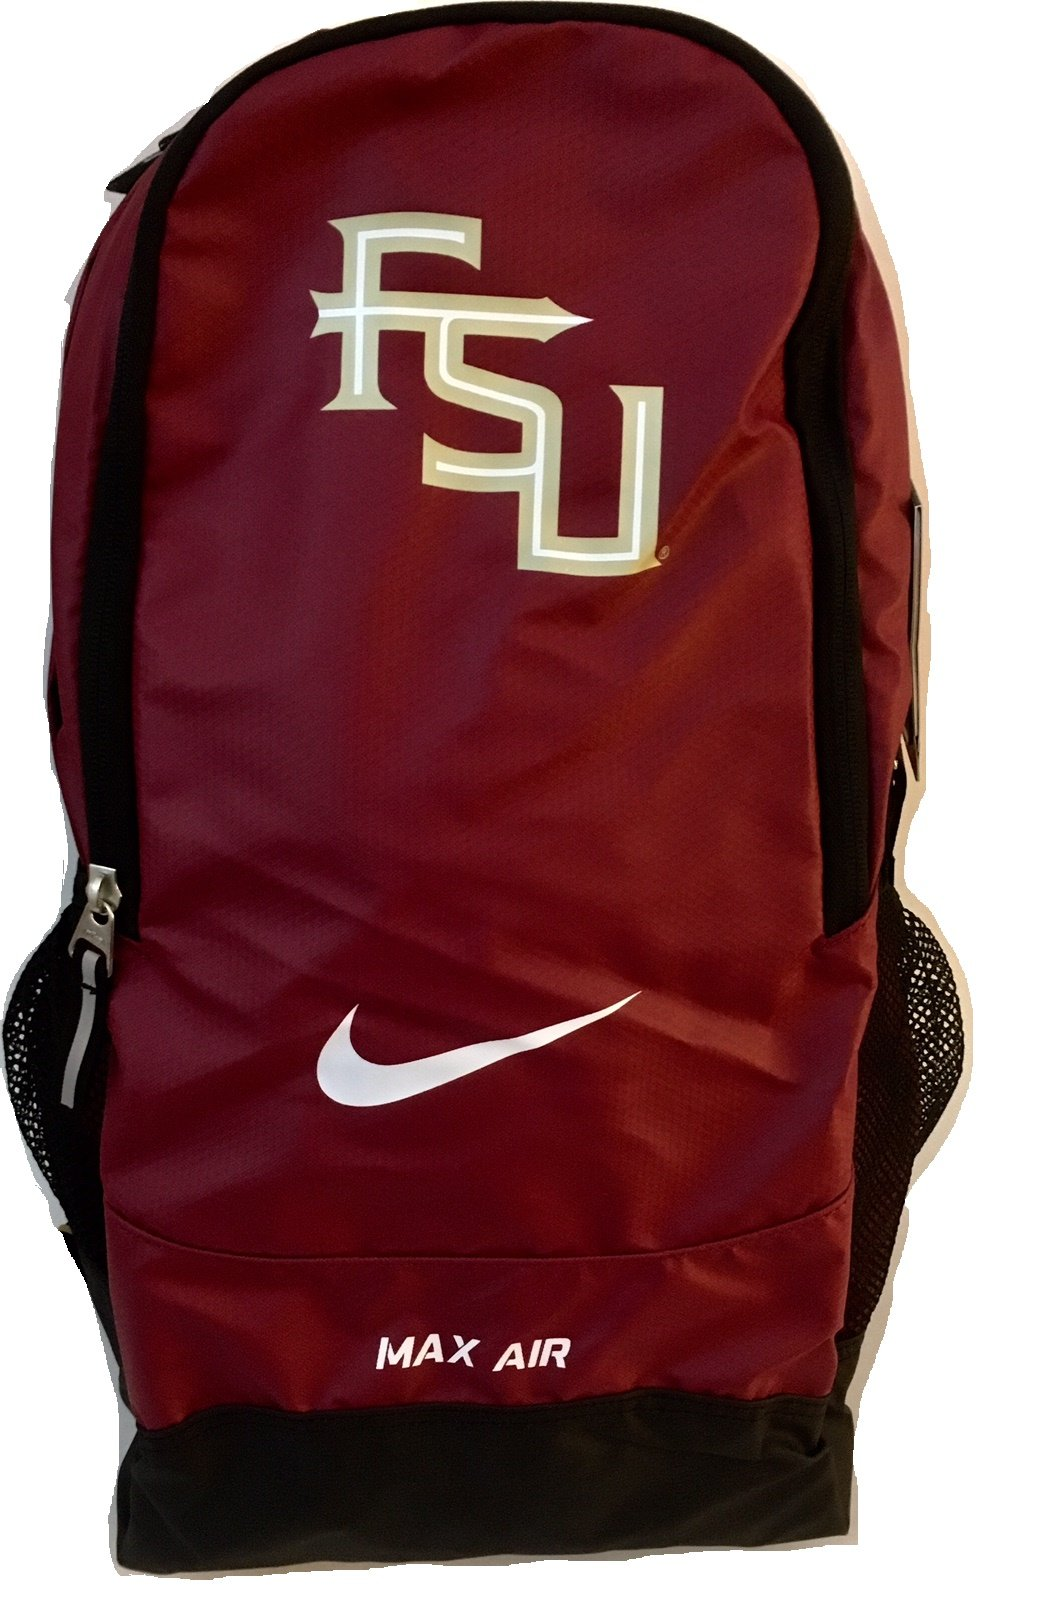 c9ae9b3478e0 Get Quotations · Nike Max Air Training College Team Backpack FLORIDA STATE  SEMINOLES